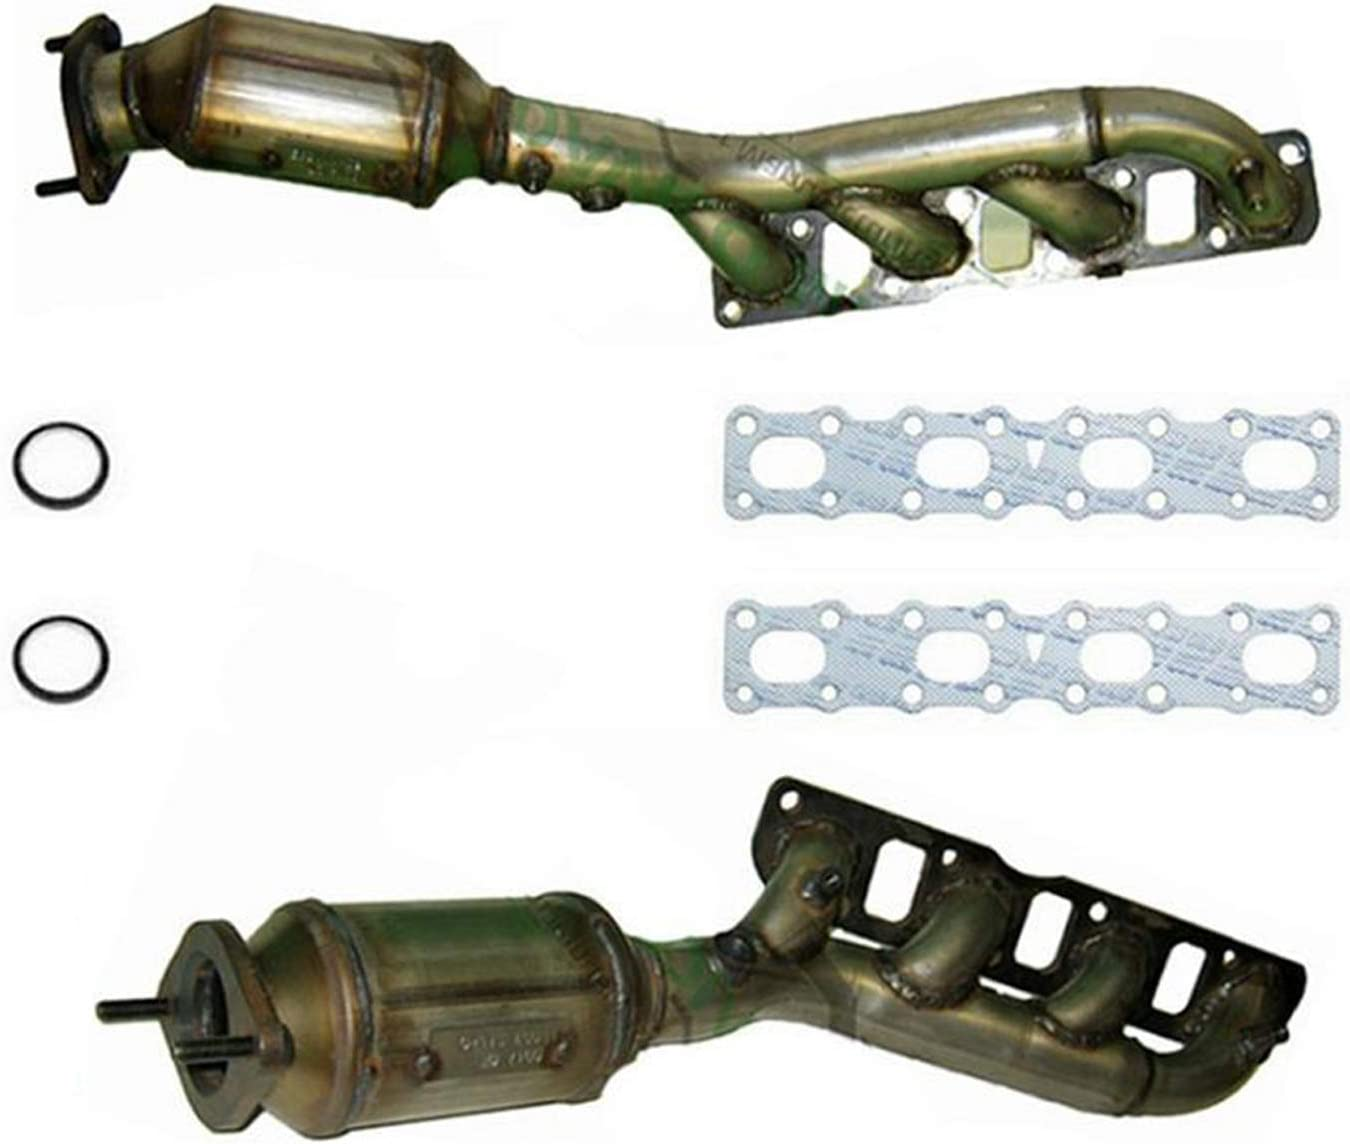 New Manifold Catalytic Converters for Infiniti QX56 04-10 for Nissan Titan 04-13